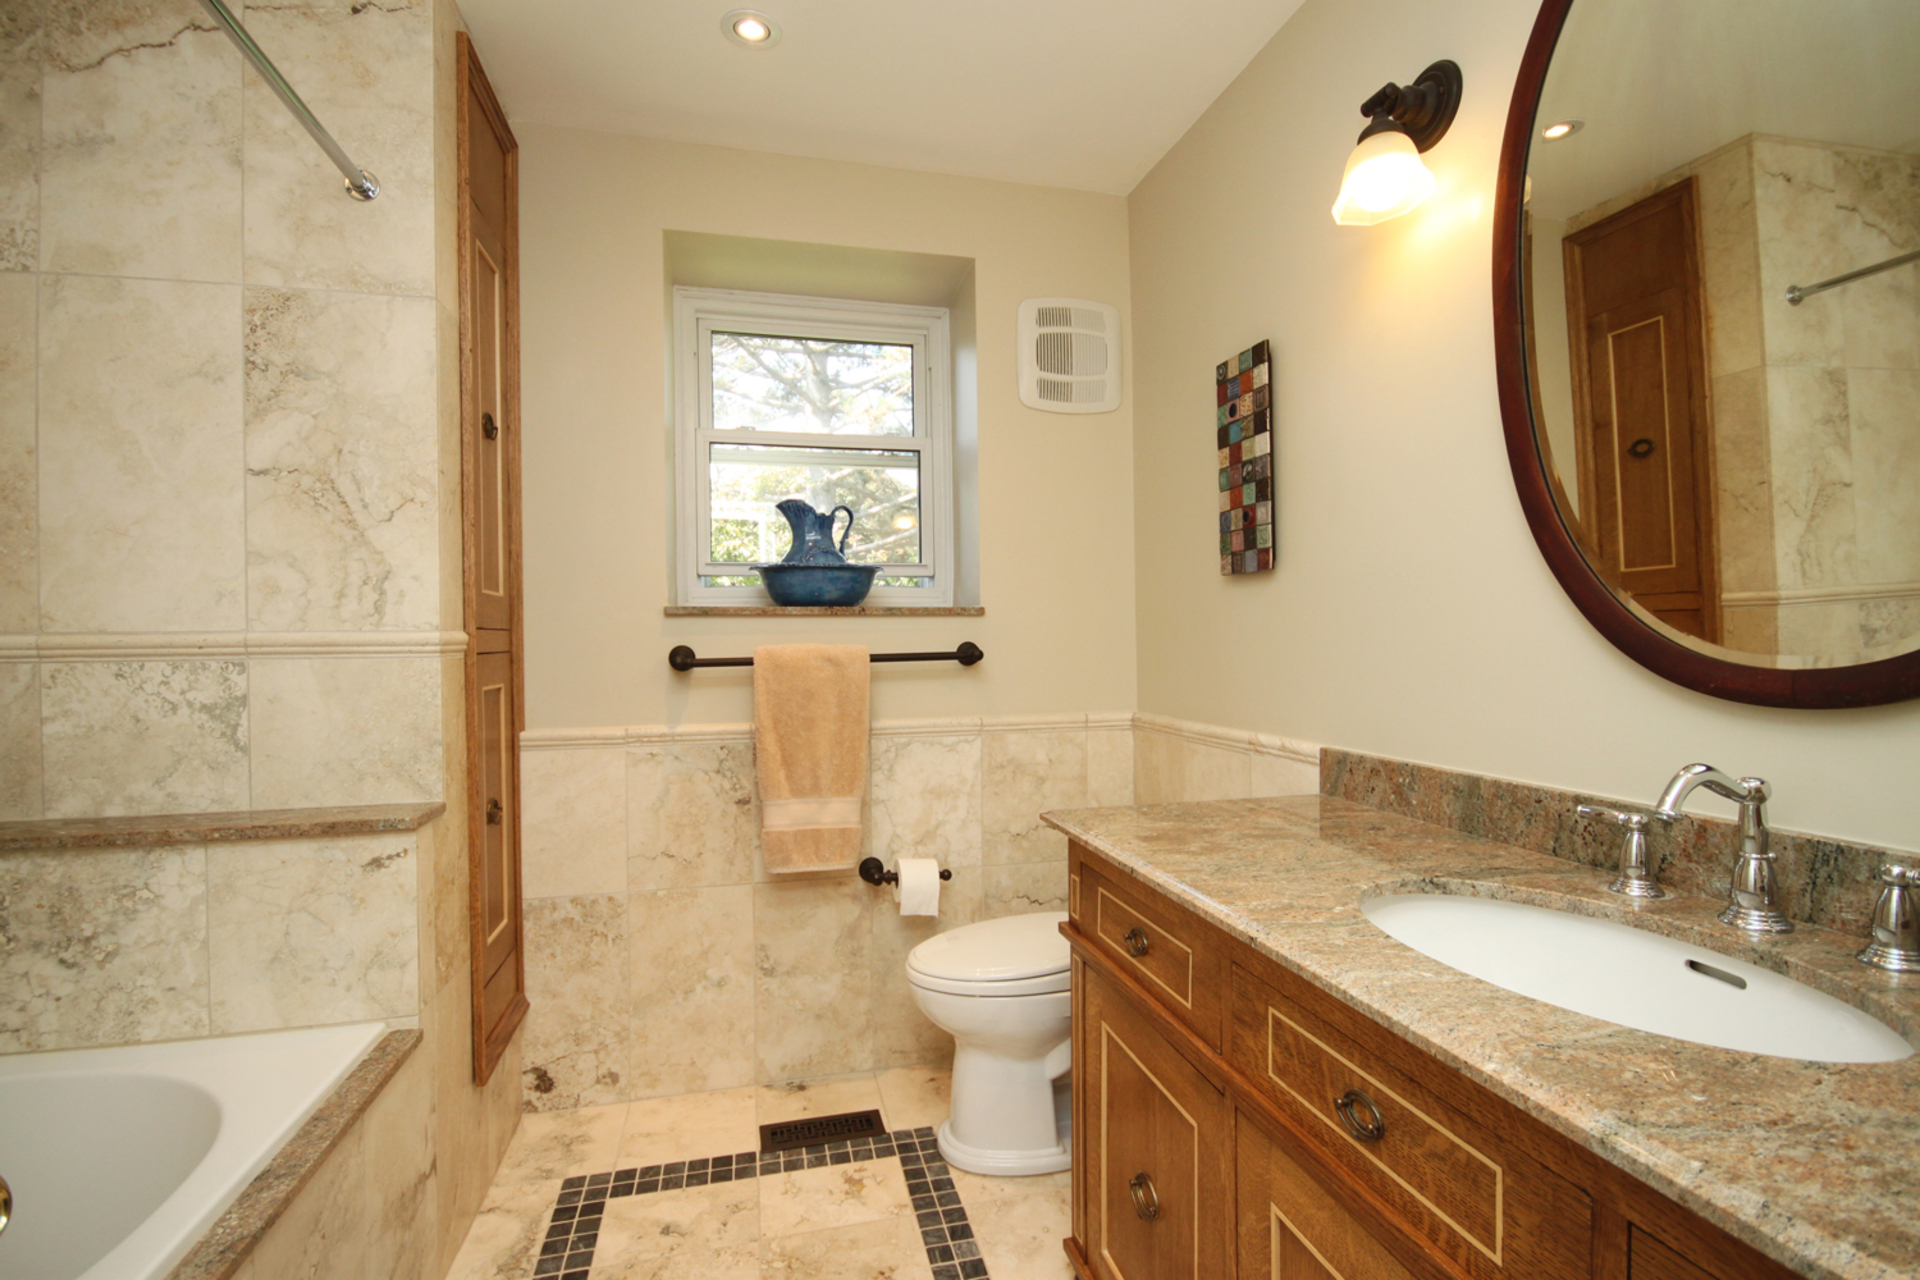 4 Piece Bathroom at 5 Belton Road, Banbury-Don Mills, Toronto